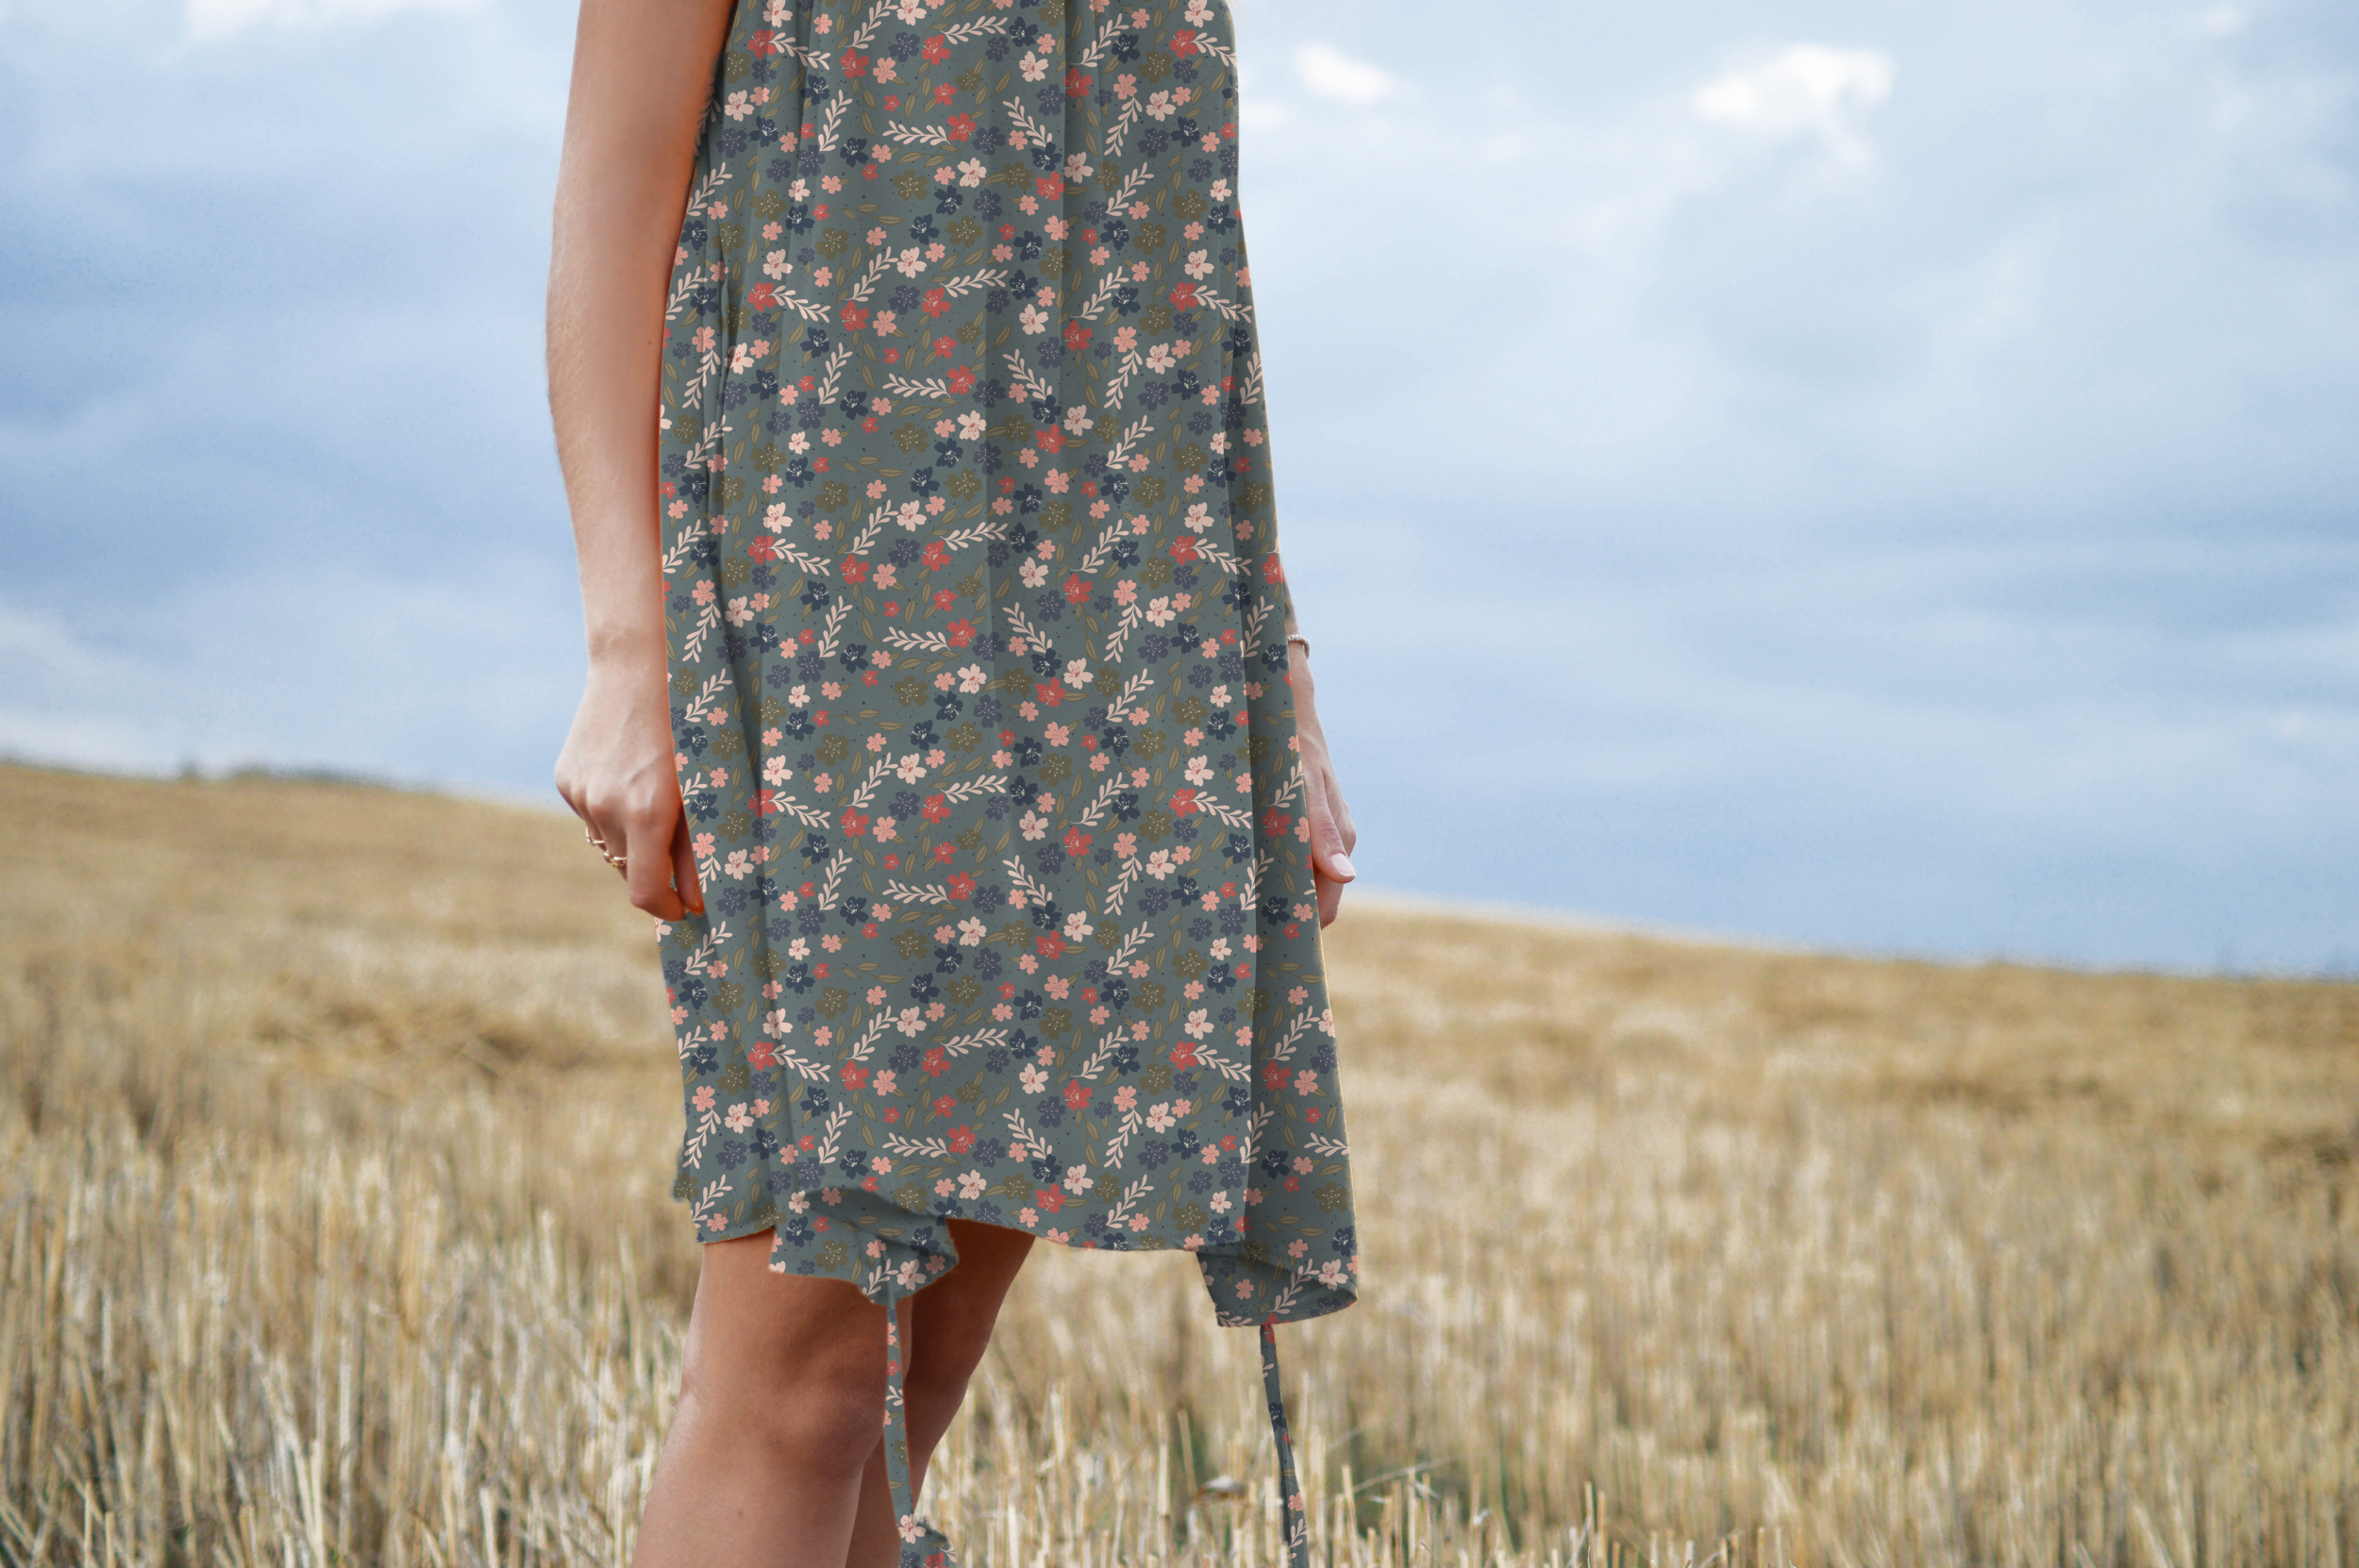 dress in field of grass.png